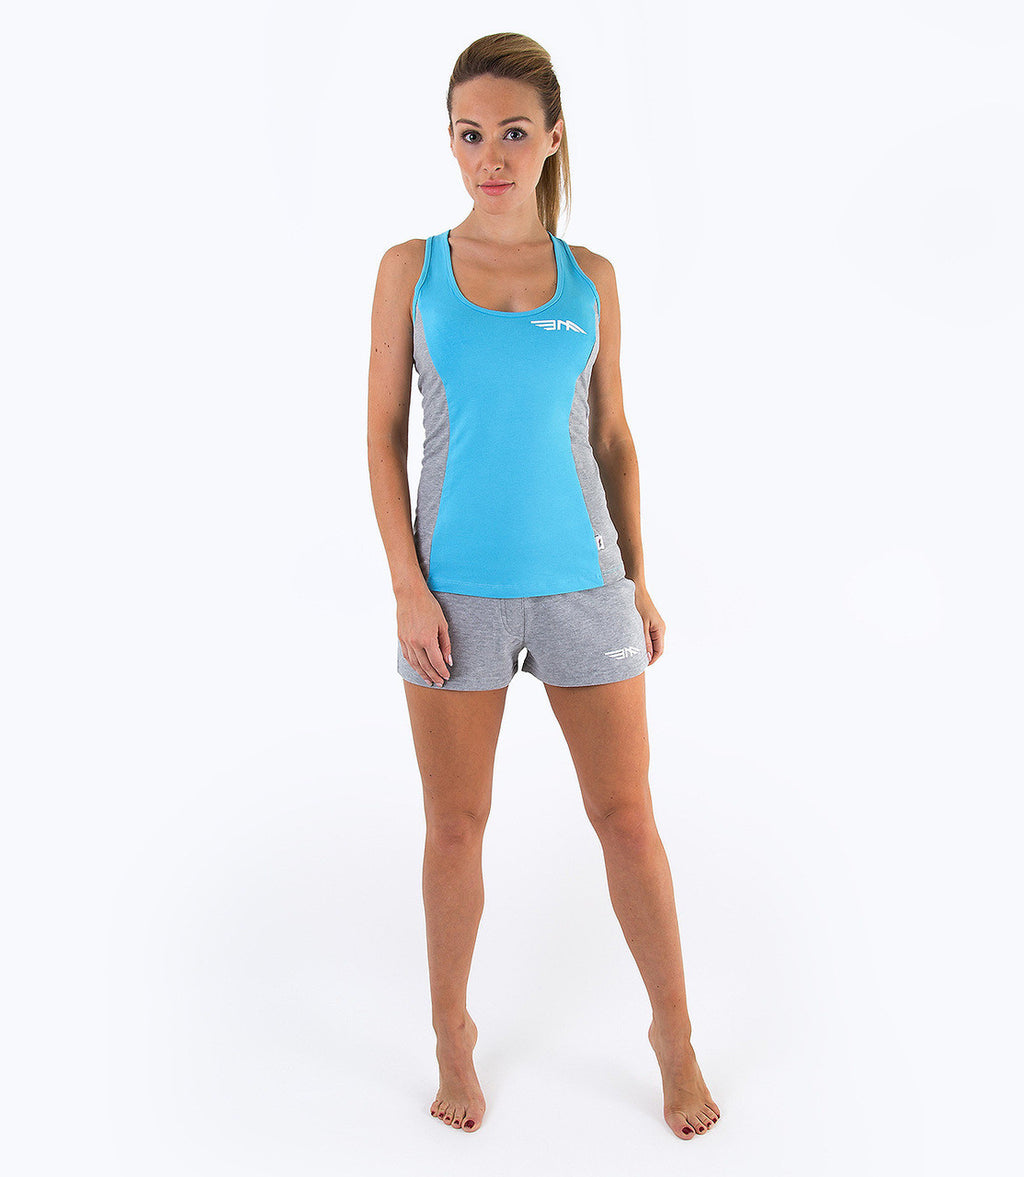 LADIES COLOUR BLOCK VEST - BLUE/GREY